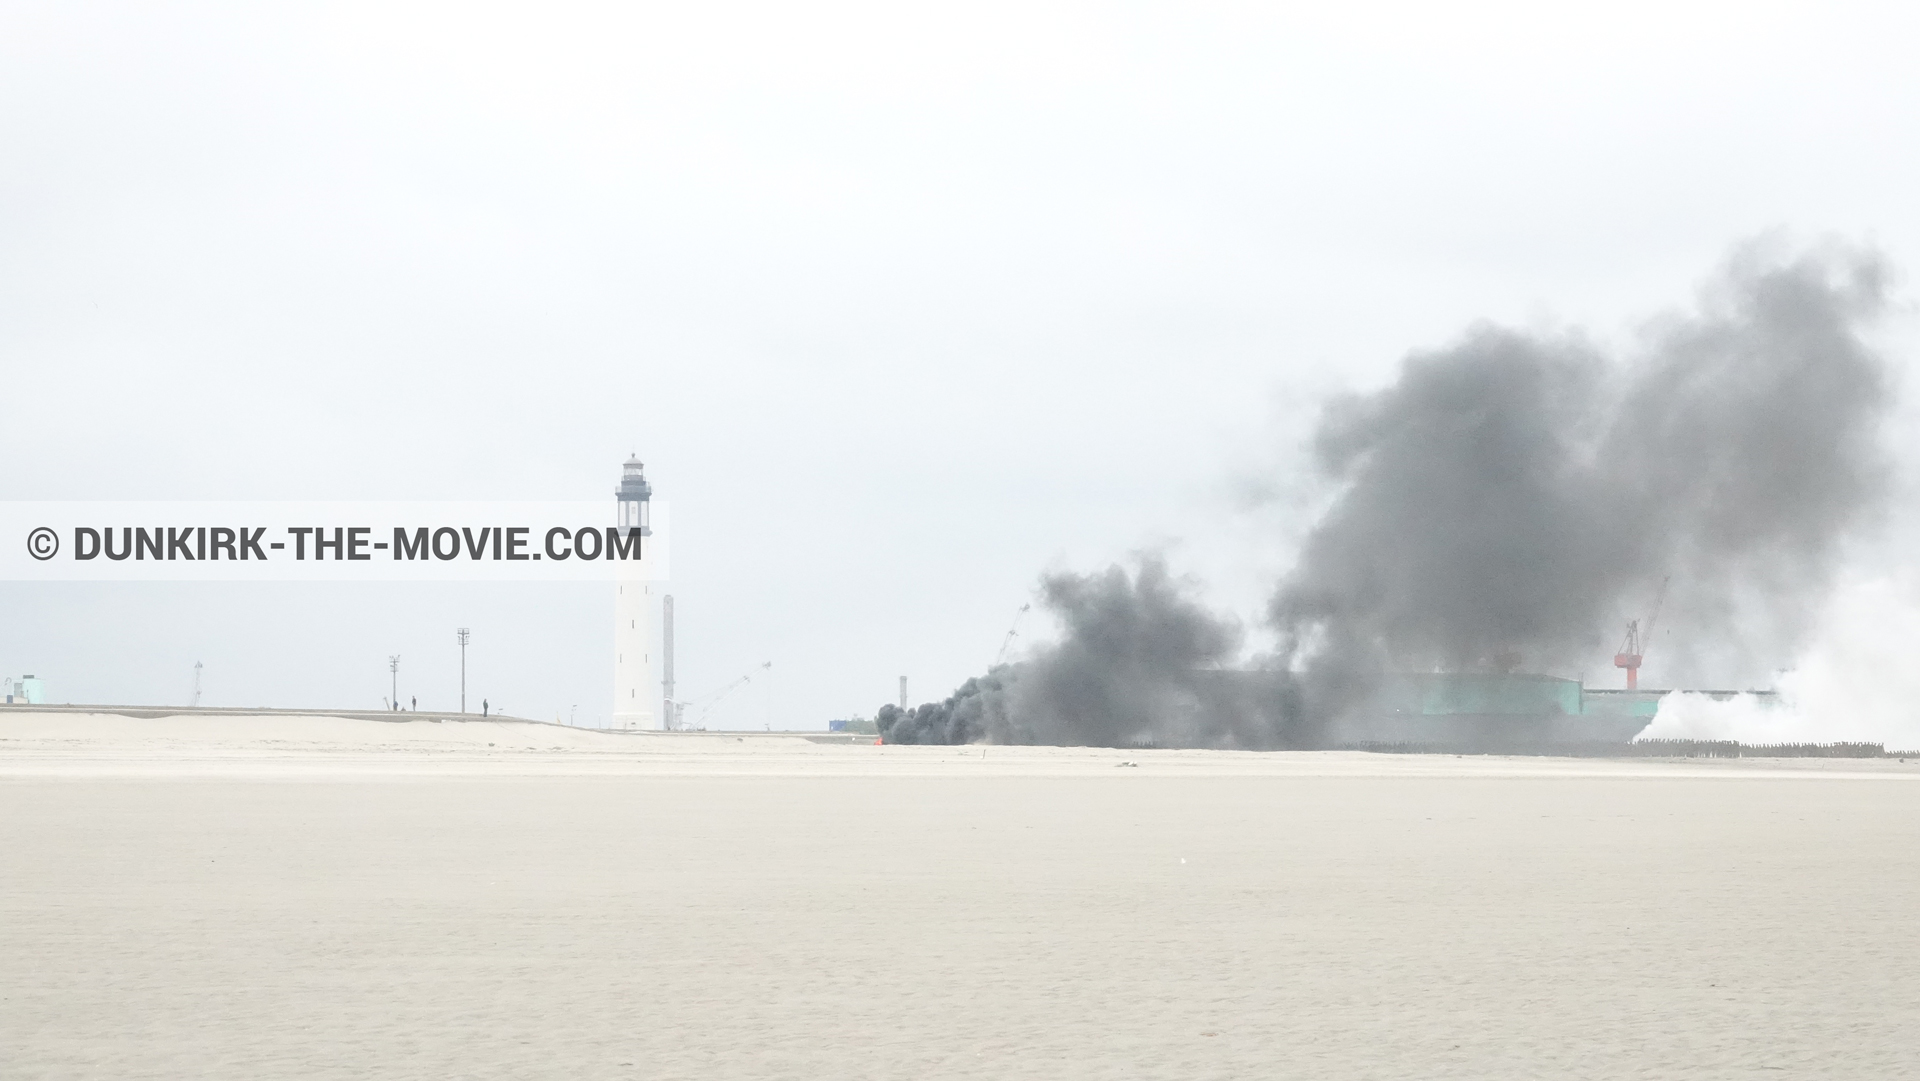 Picture with grey sky, black smoke, Dunkirk lighthouse, beach,  from behind the scene of the Dunkirk movie by Nolan